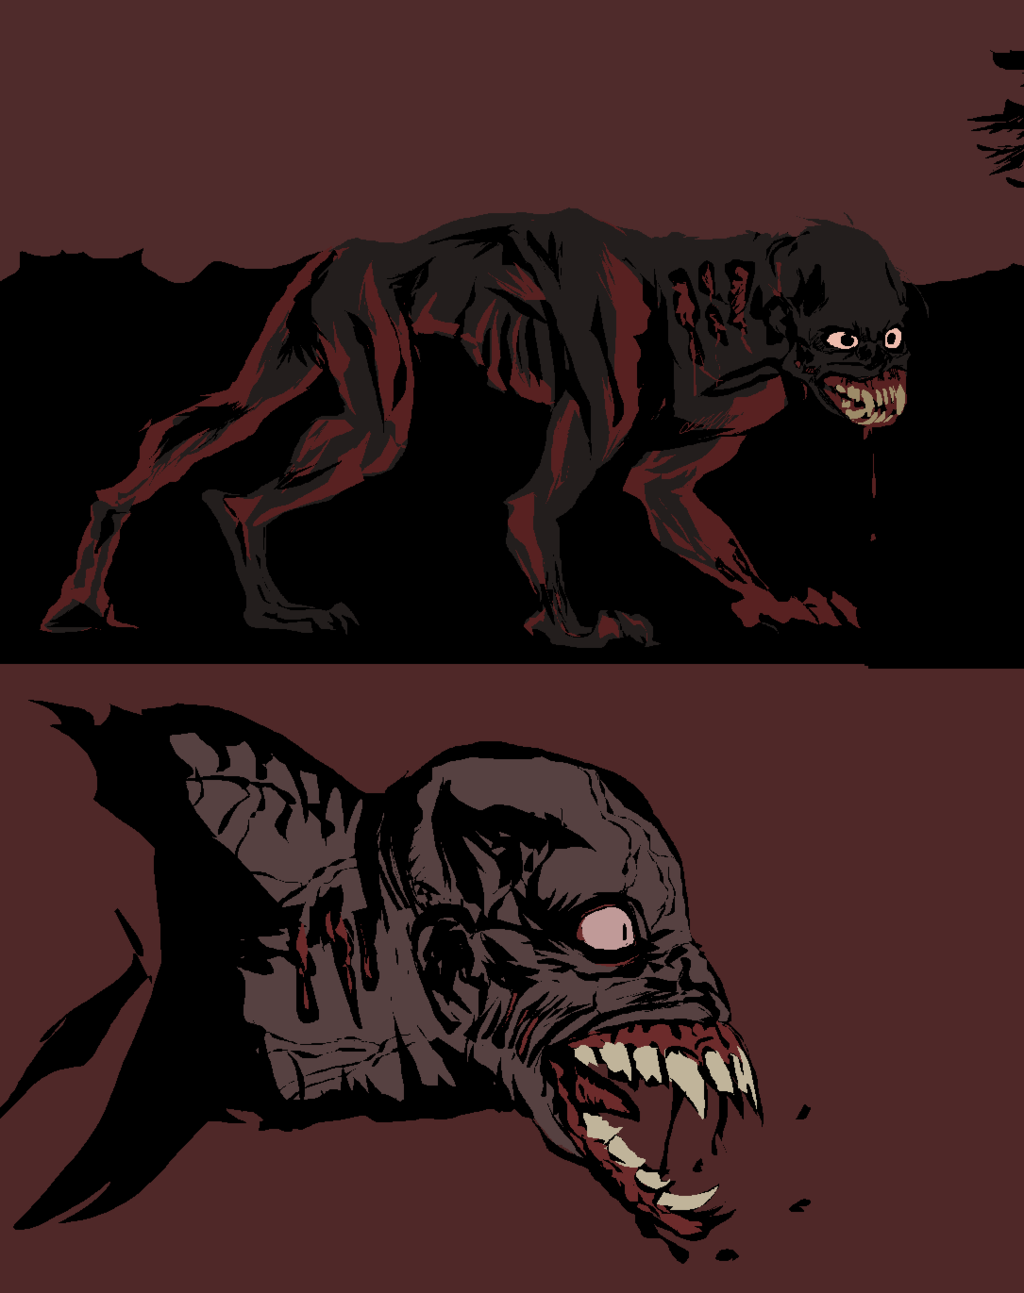 Featured image: ugly werewolf design from 2011